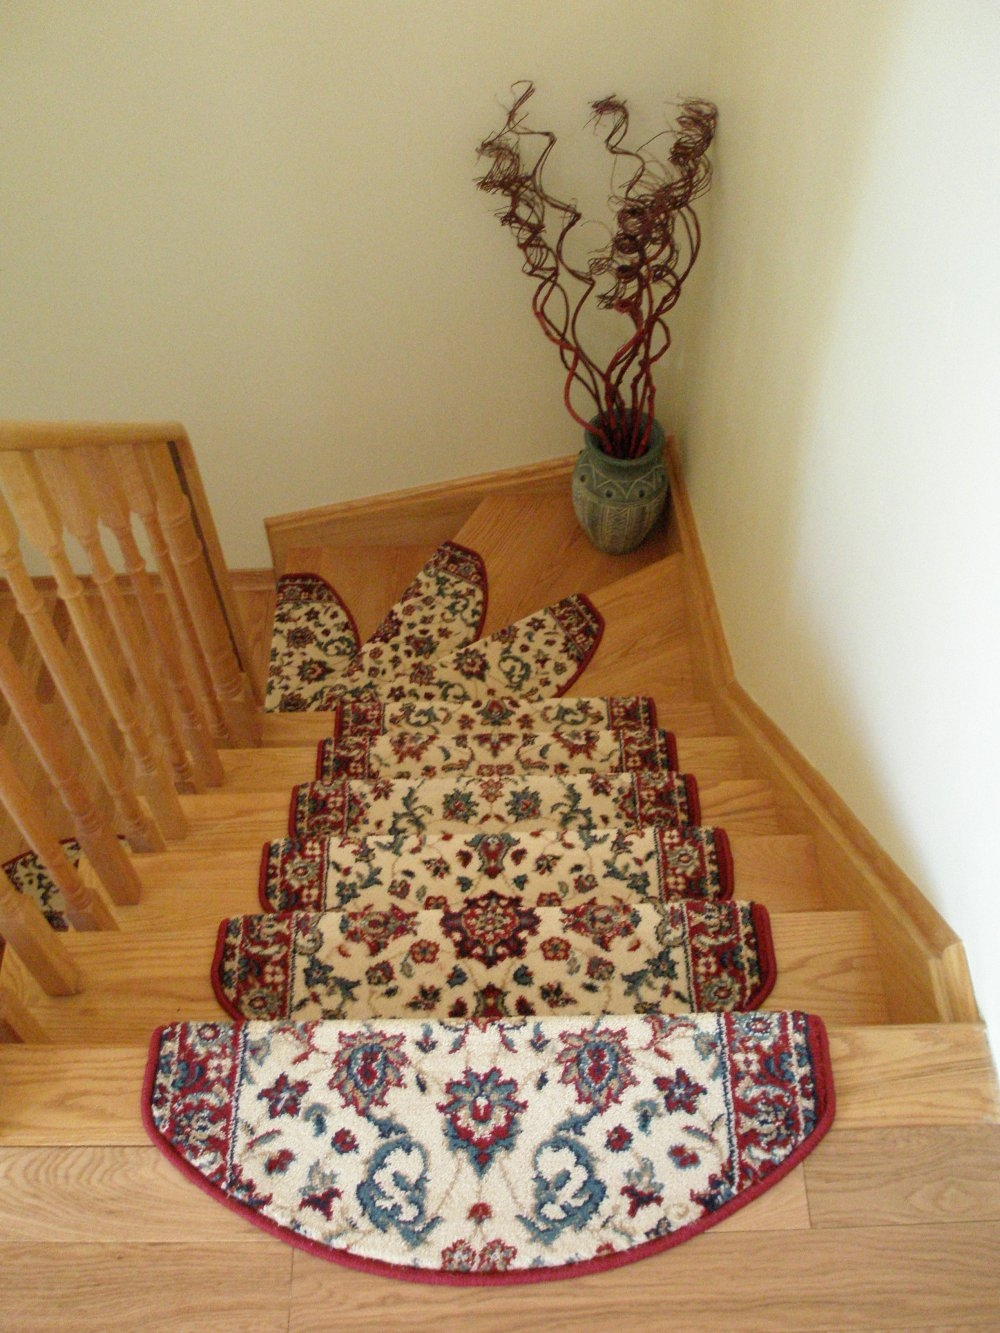 Carpet Stair Treads Stair Mats Stair Rugs Regarding Stair Tread Rugs For Carpet (Image 4 of 15)